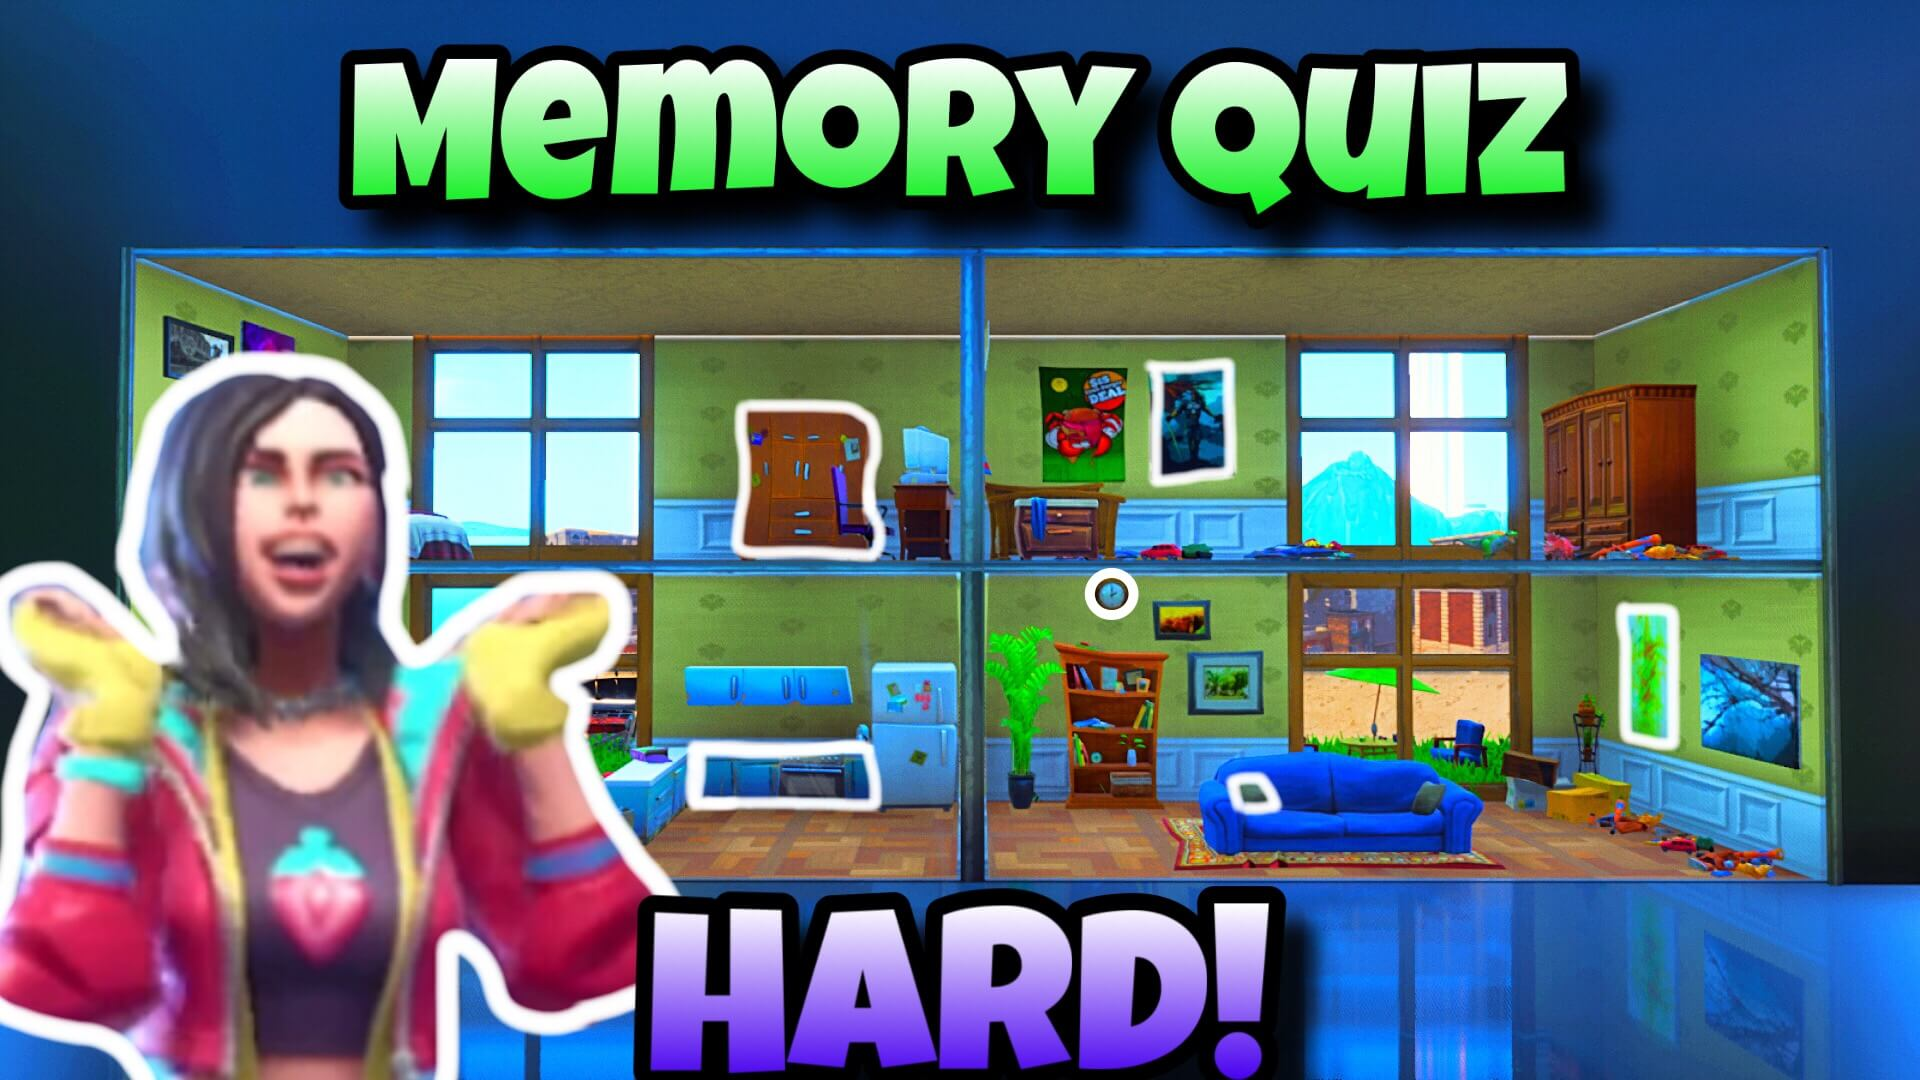 THE VISUAL MEMORY QUIZ (HARD)